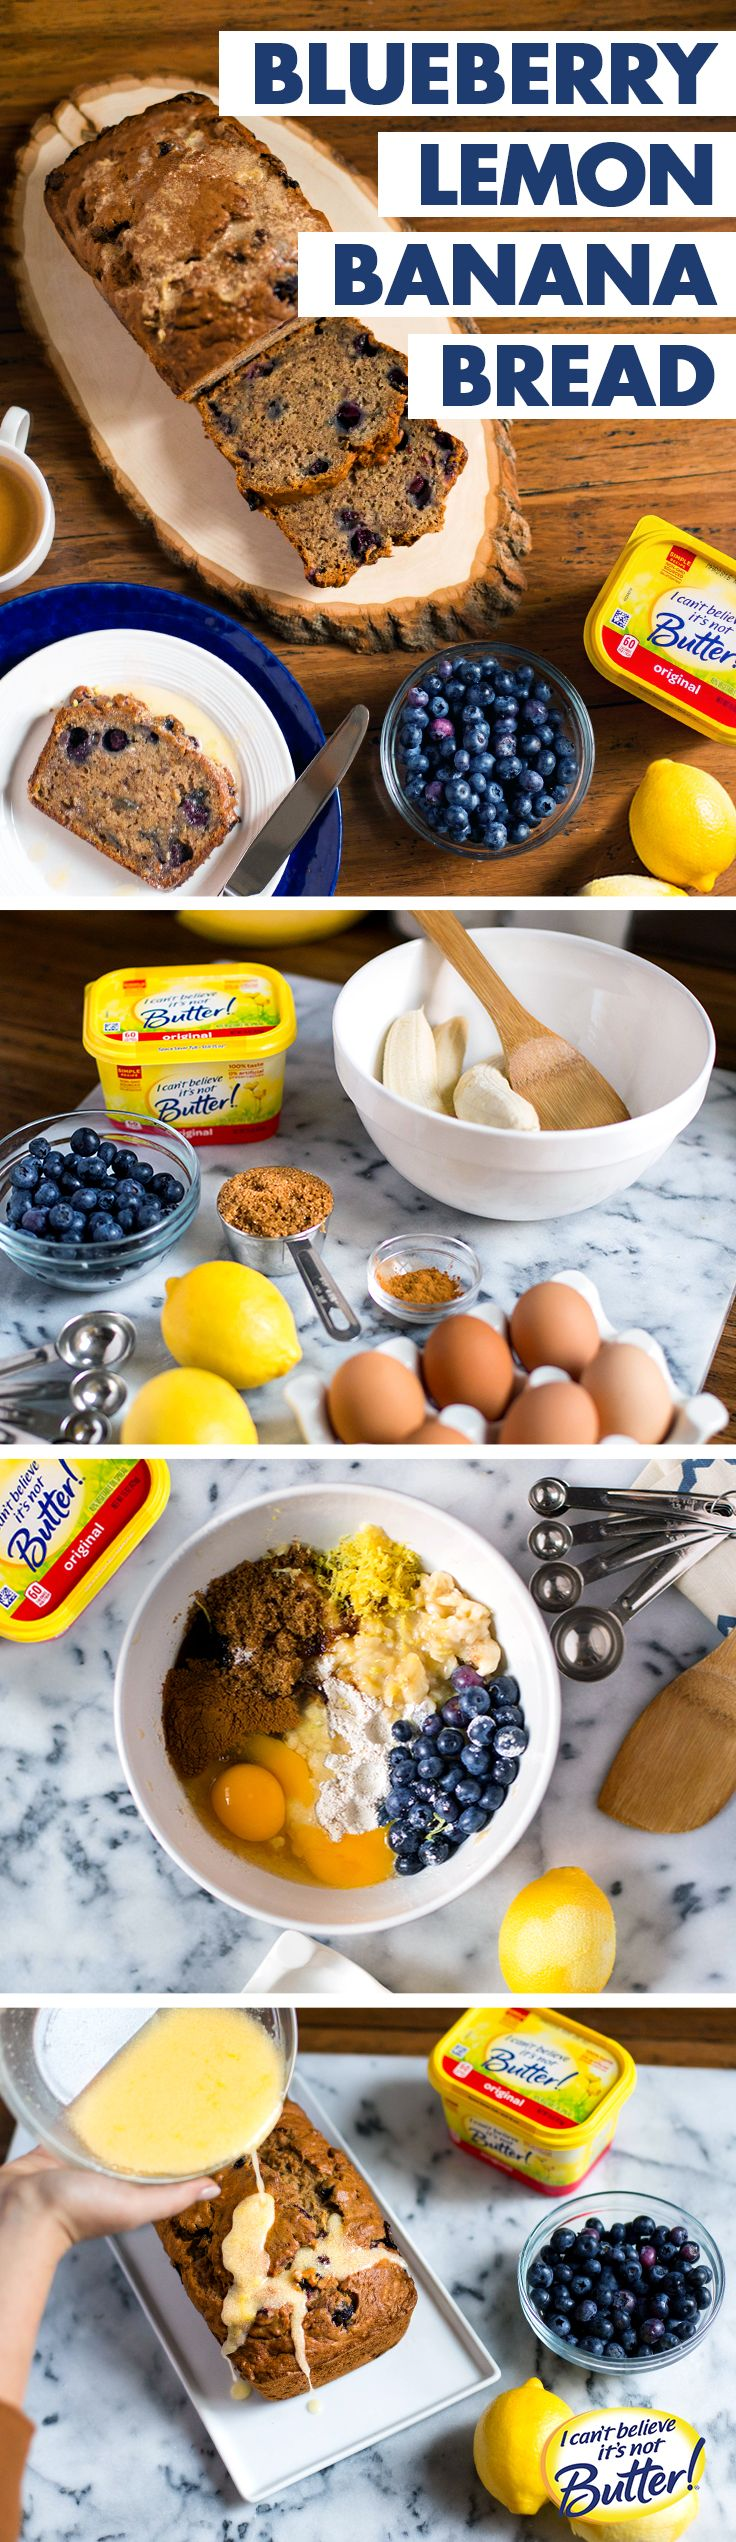 When you're feeling the winter blues, take your taste buds on vacation with this sweet & fruity Blueberry Lemon Banana Bread. Just follow our Best Ever Banana Bread recipe, using I Can't Believe It's Not Butter!® to make it even more moist than baking with butter! Mix in 1 cup fresh blueberries, and 1 tsp. grated lemon peel to the batter and bake as usual. Pair this sweet treat with fresh berries to brighten up any morning.